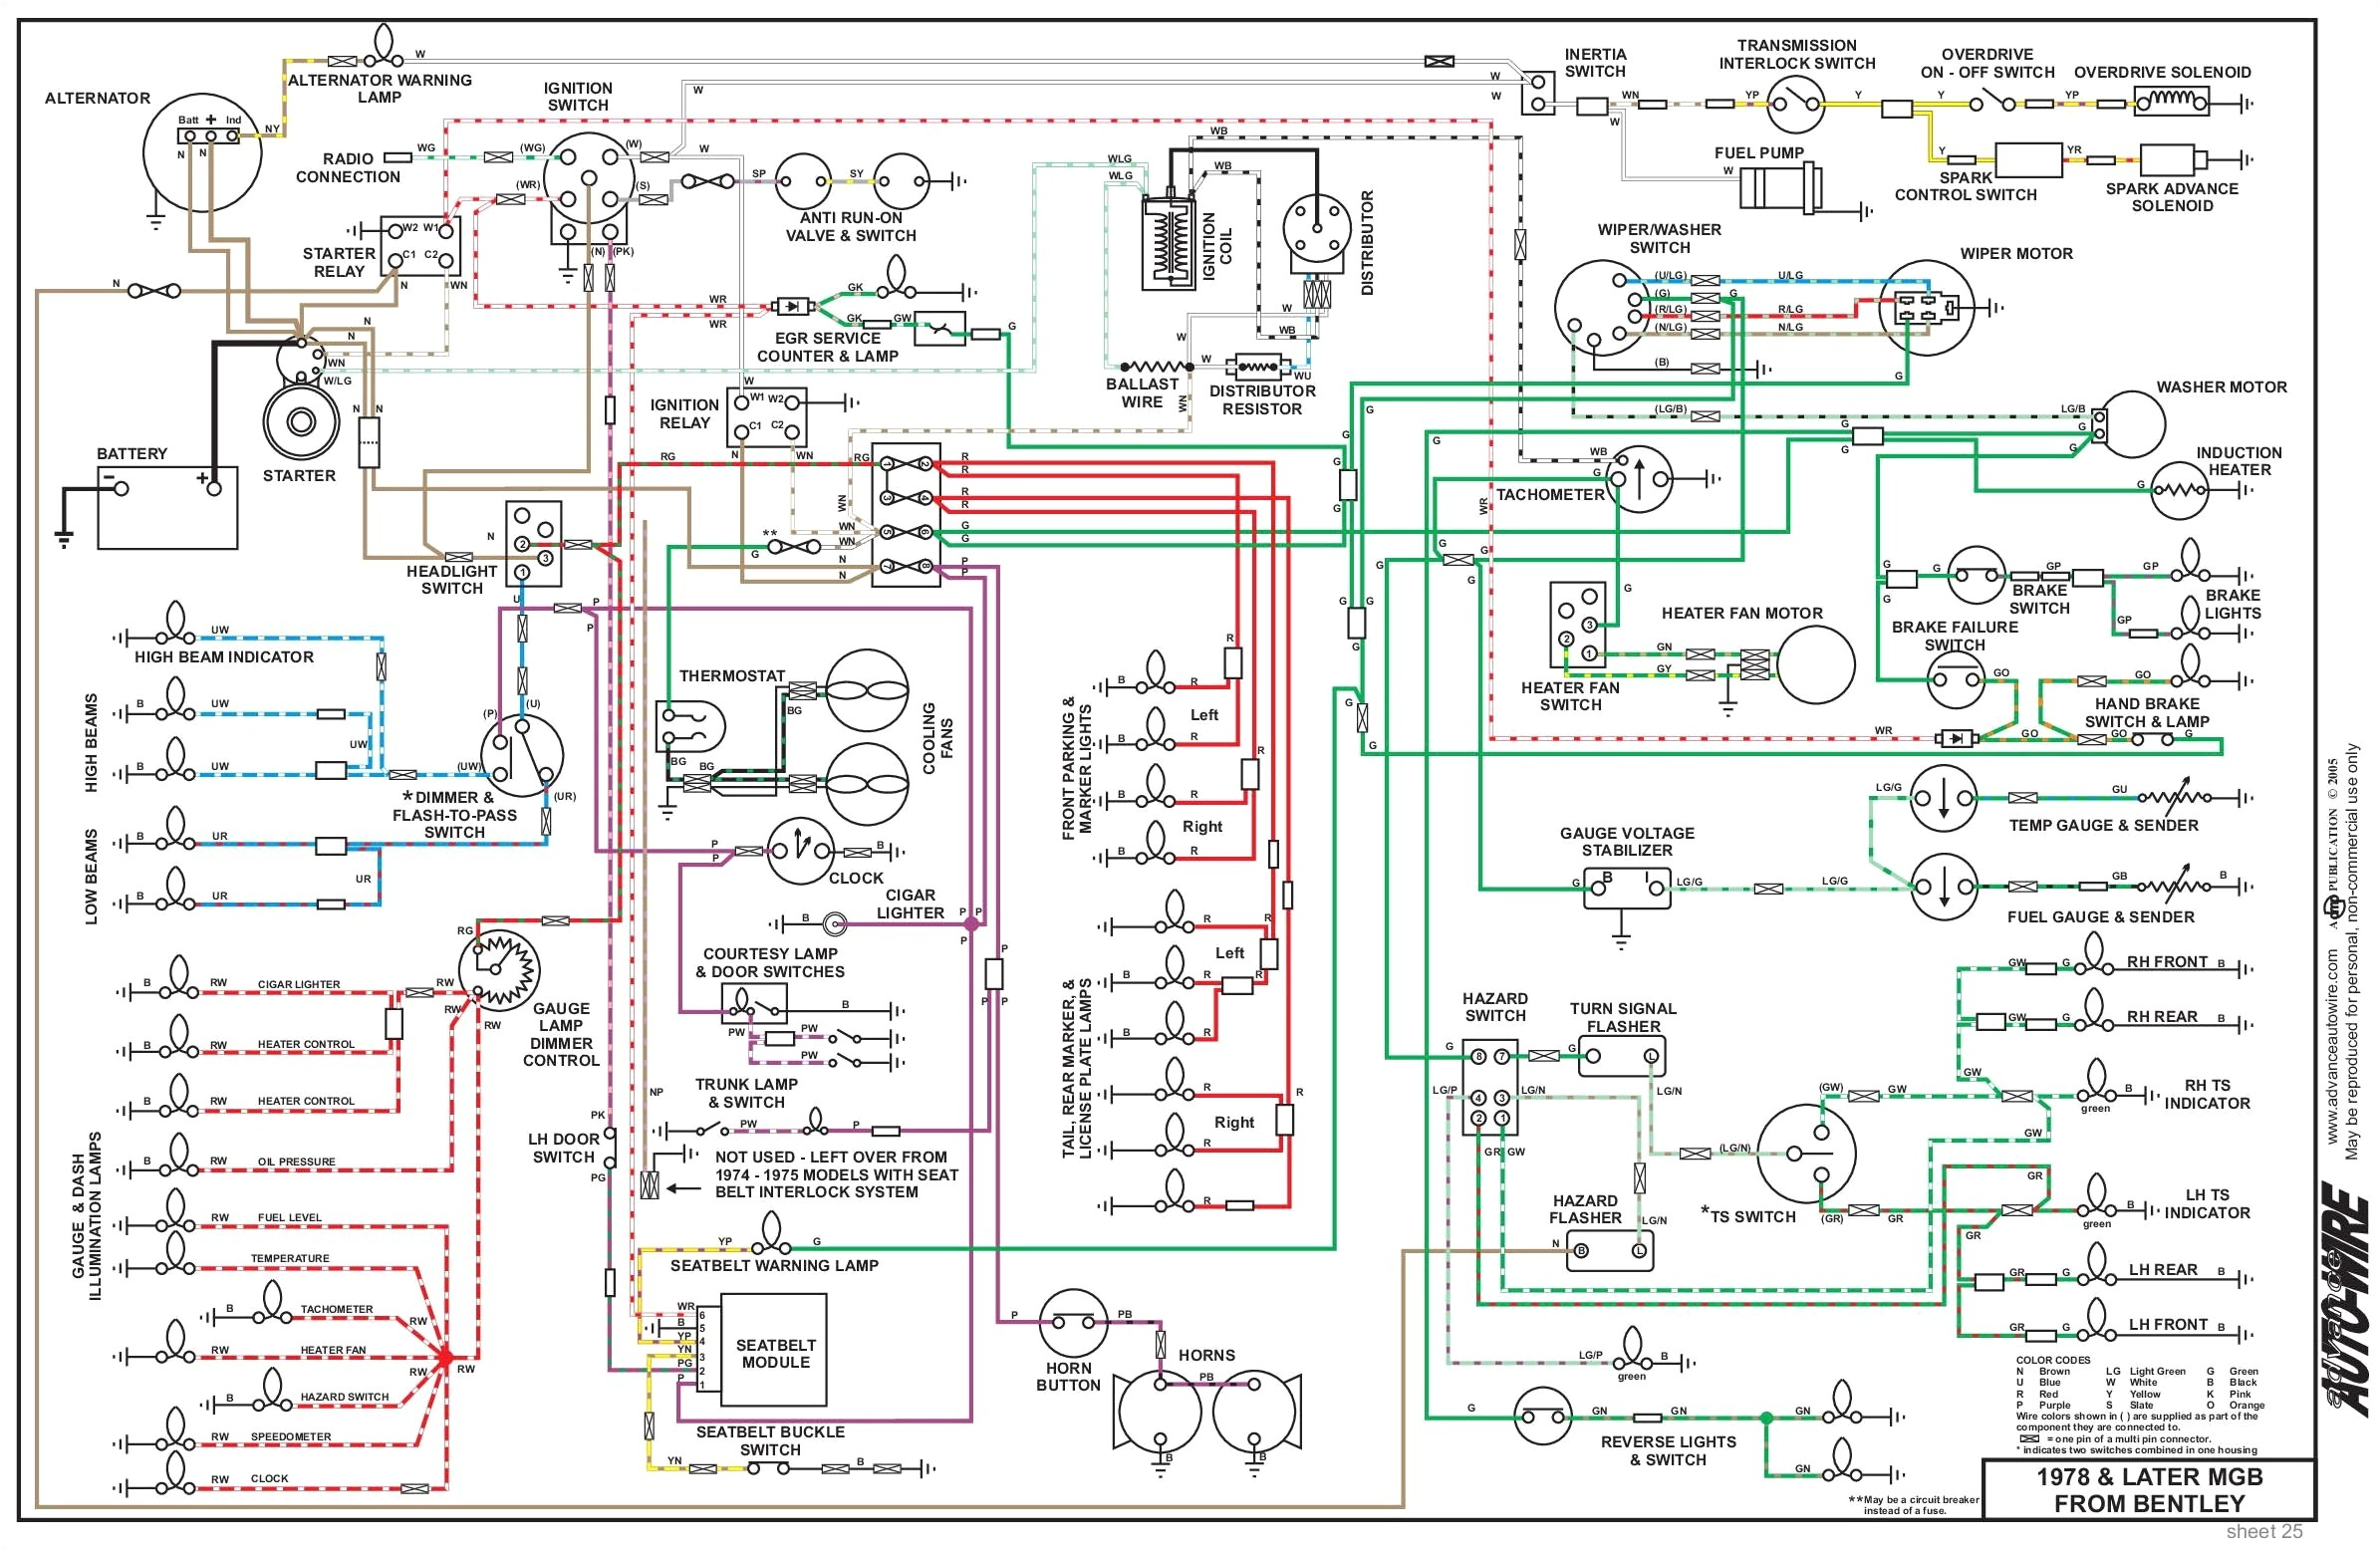 wiring harness dash routing mgb gt wiring diagram mega 1976 mgb wiring diagram wiring diagram meta